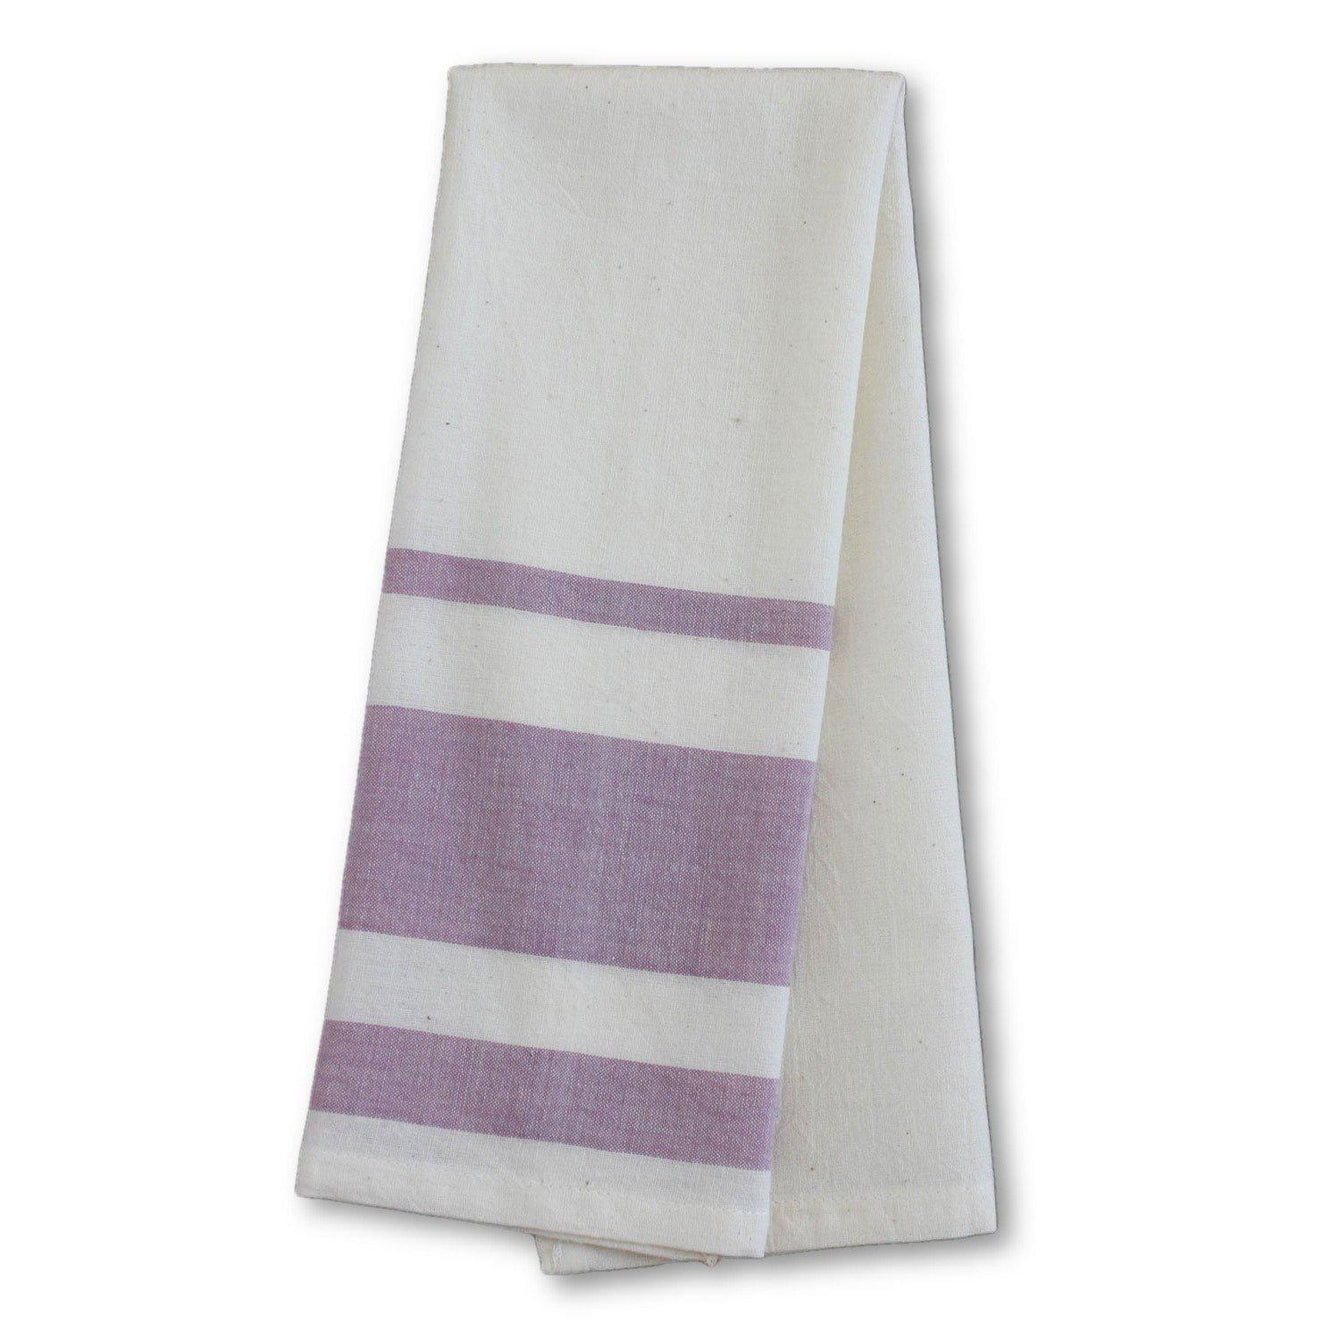 Lavender Cotton Tea Towels Set of 2-Home - Dining - Kitchen Towels-SUSTAINABLE THREADS FAIR TRADE-Peccadilly